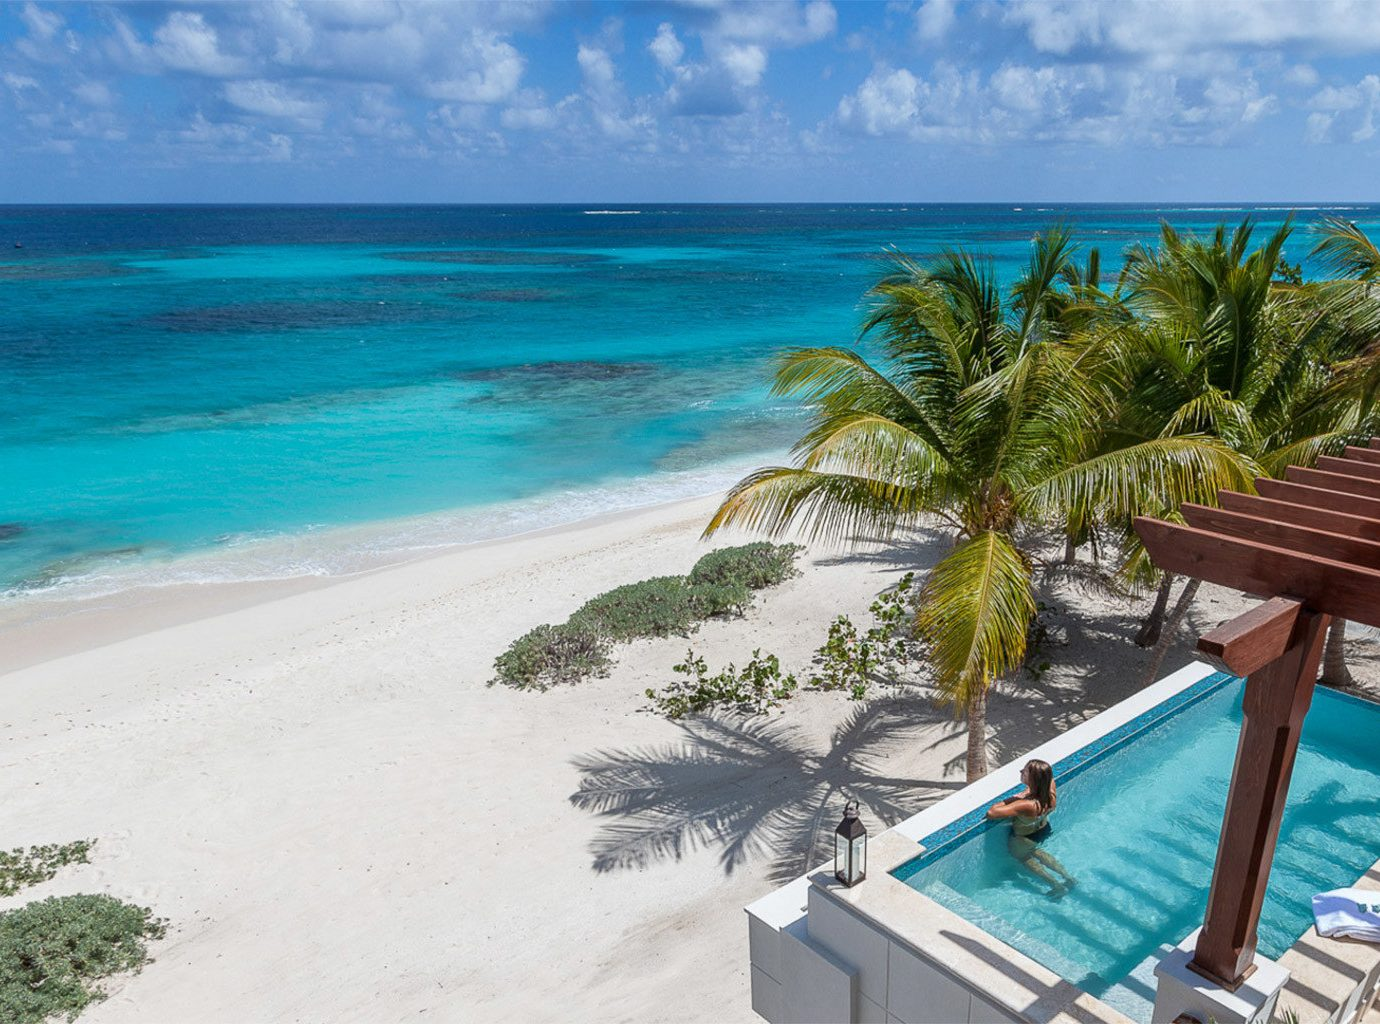 Hotels Trip Ideas water sky outdoor Beach Pool chair landform caribbean geographical feature Ocean vacation Sea body of water Nature shore Coast Resort bay tropics Lagoon cape Island lawn swimming pool swimming cay sandy palm empty reef overlooking Deck sunny day